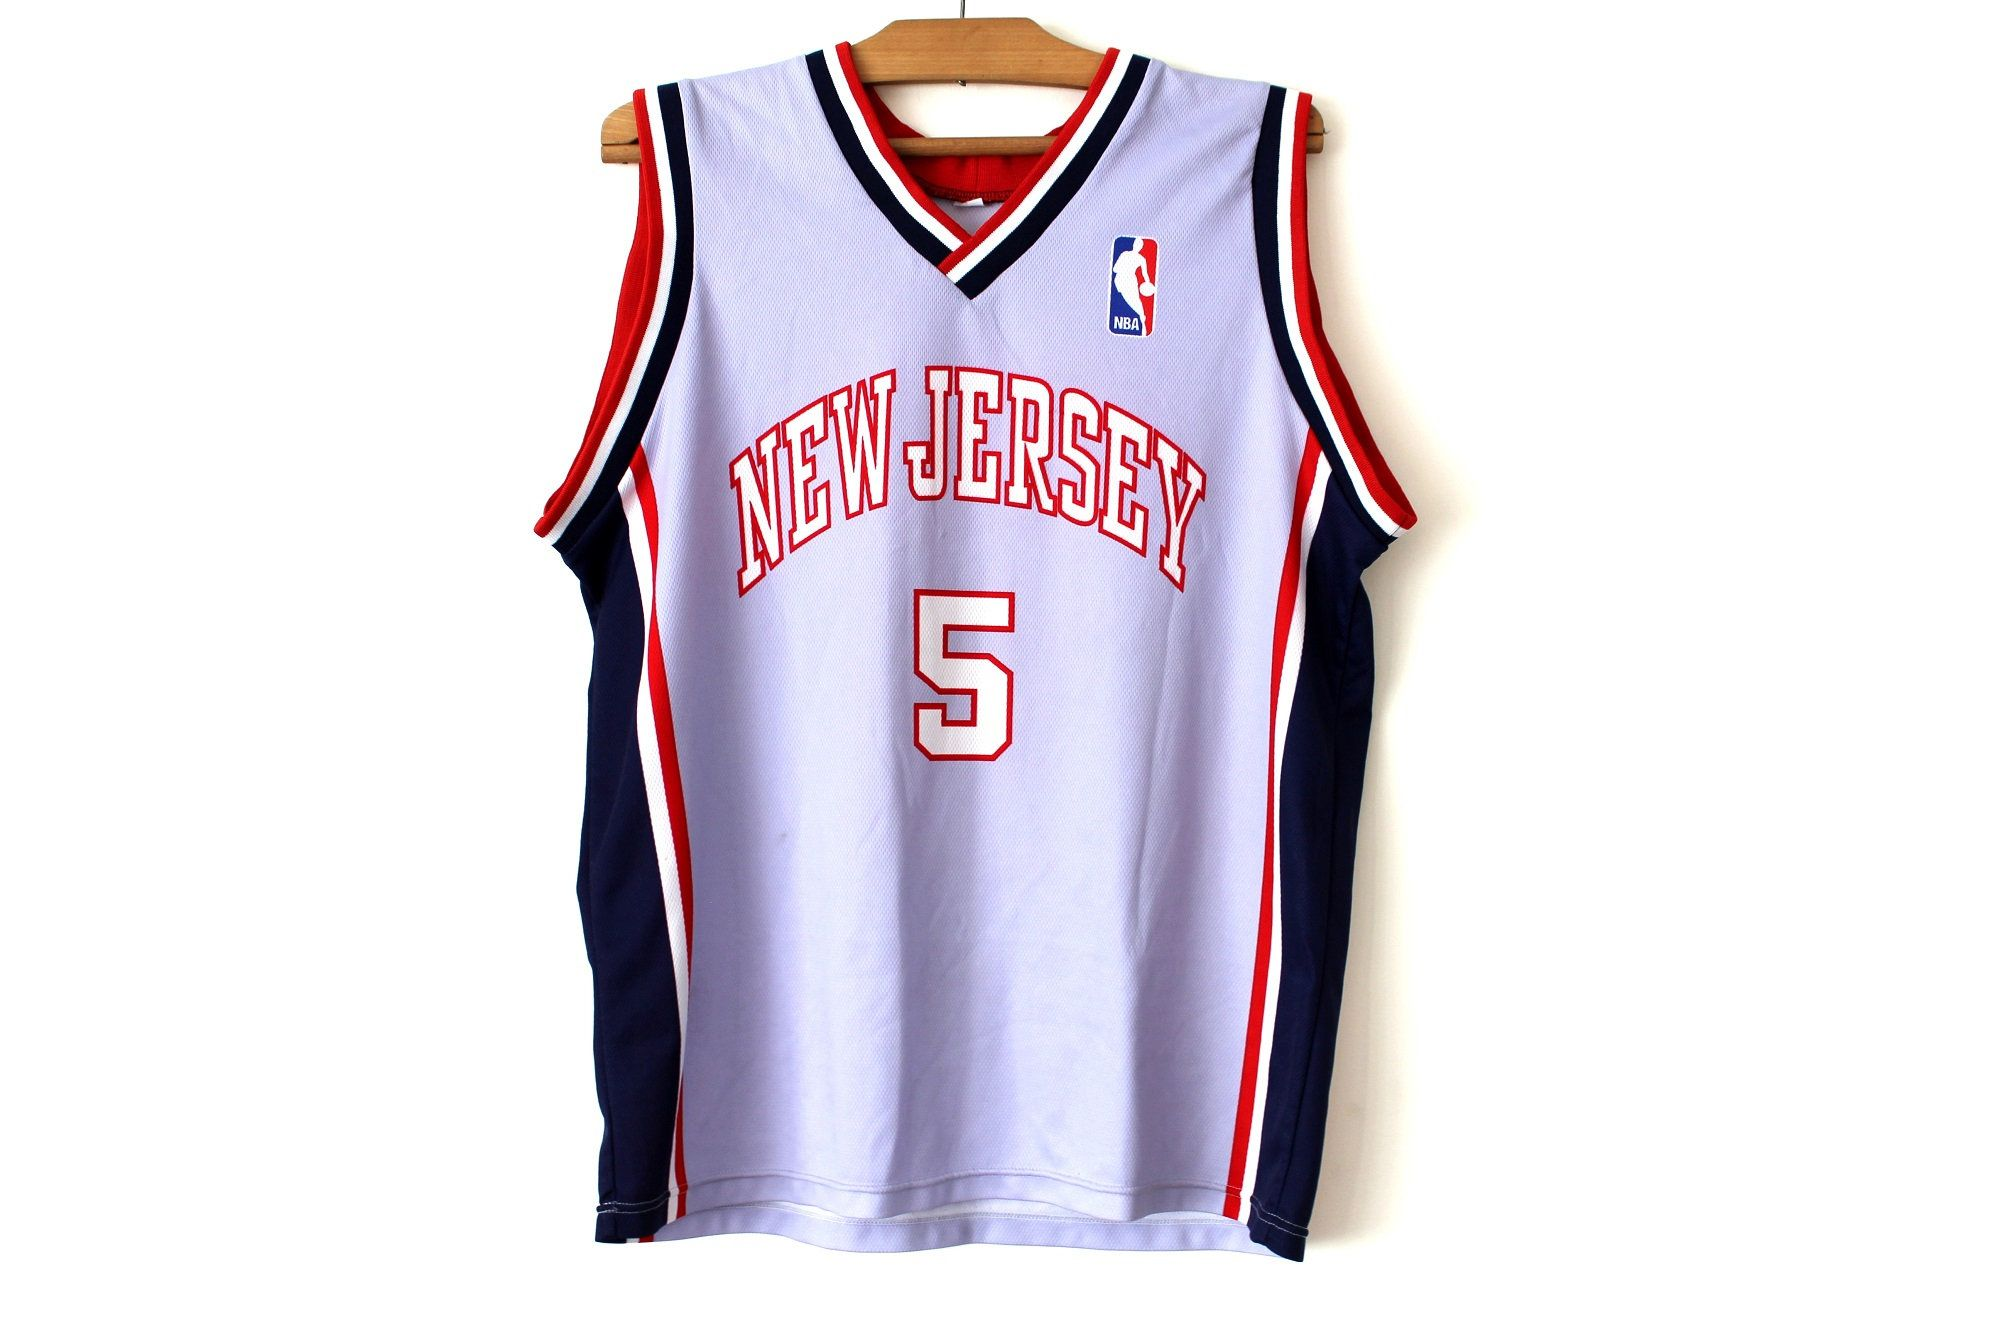 Vintage Basketball Jersey New Jersey Nba Basketball Tank Top Outdoor Jersey Athletic Tank Sport Tank Top Outdoor Jersey Size Xl In 2020 Basketball Tank Tops Vintage Basketball Jerseys Basketball Jersey